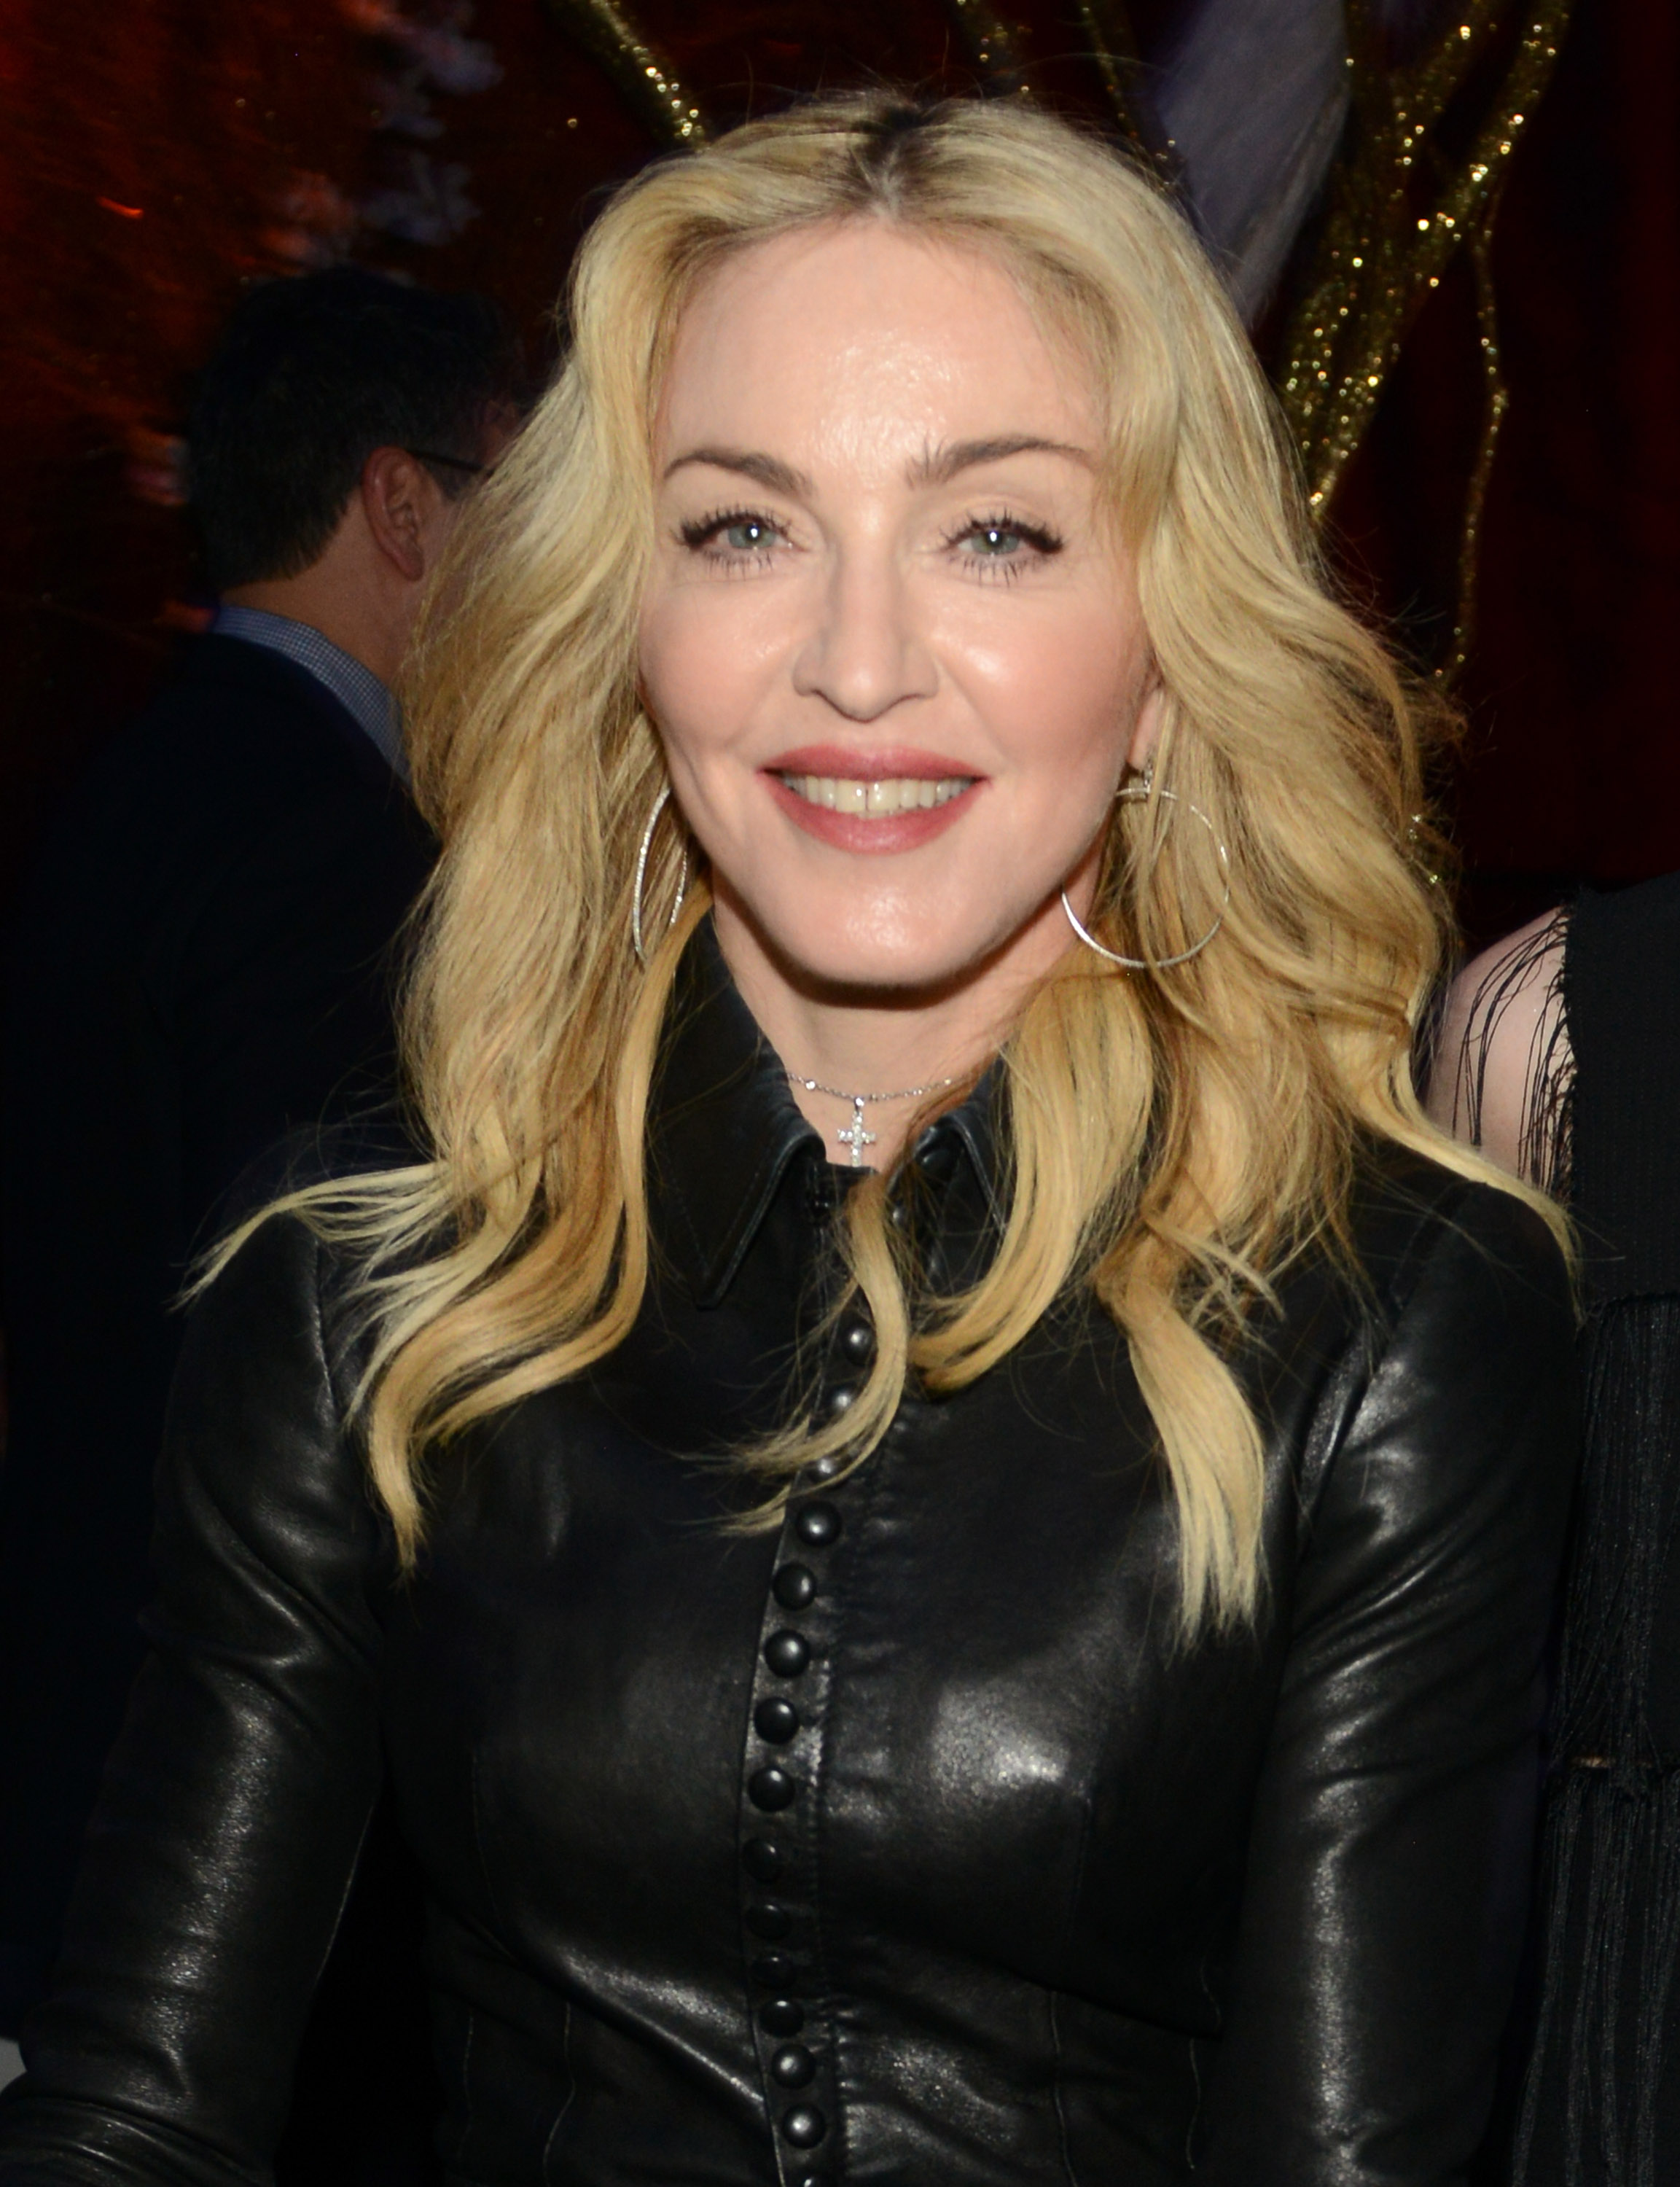 Madonna attends The Great American Songbook event honoring Bryan Lourd at Alice Tully Hall on Feb. 10, 2014 in New York.